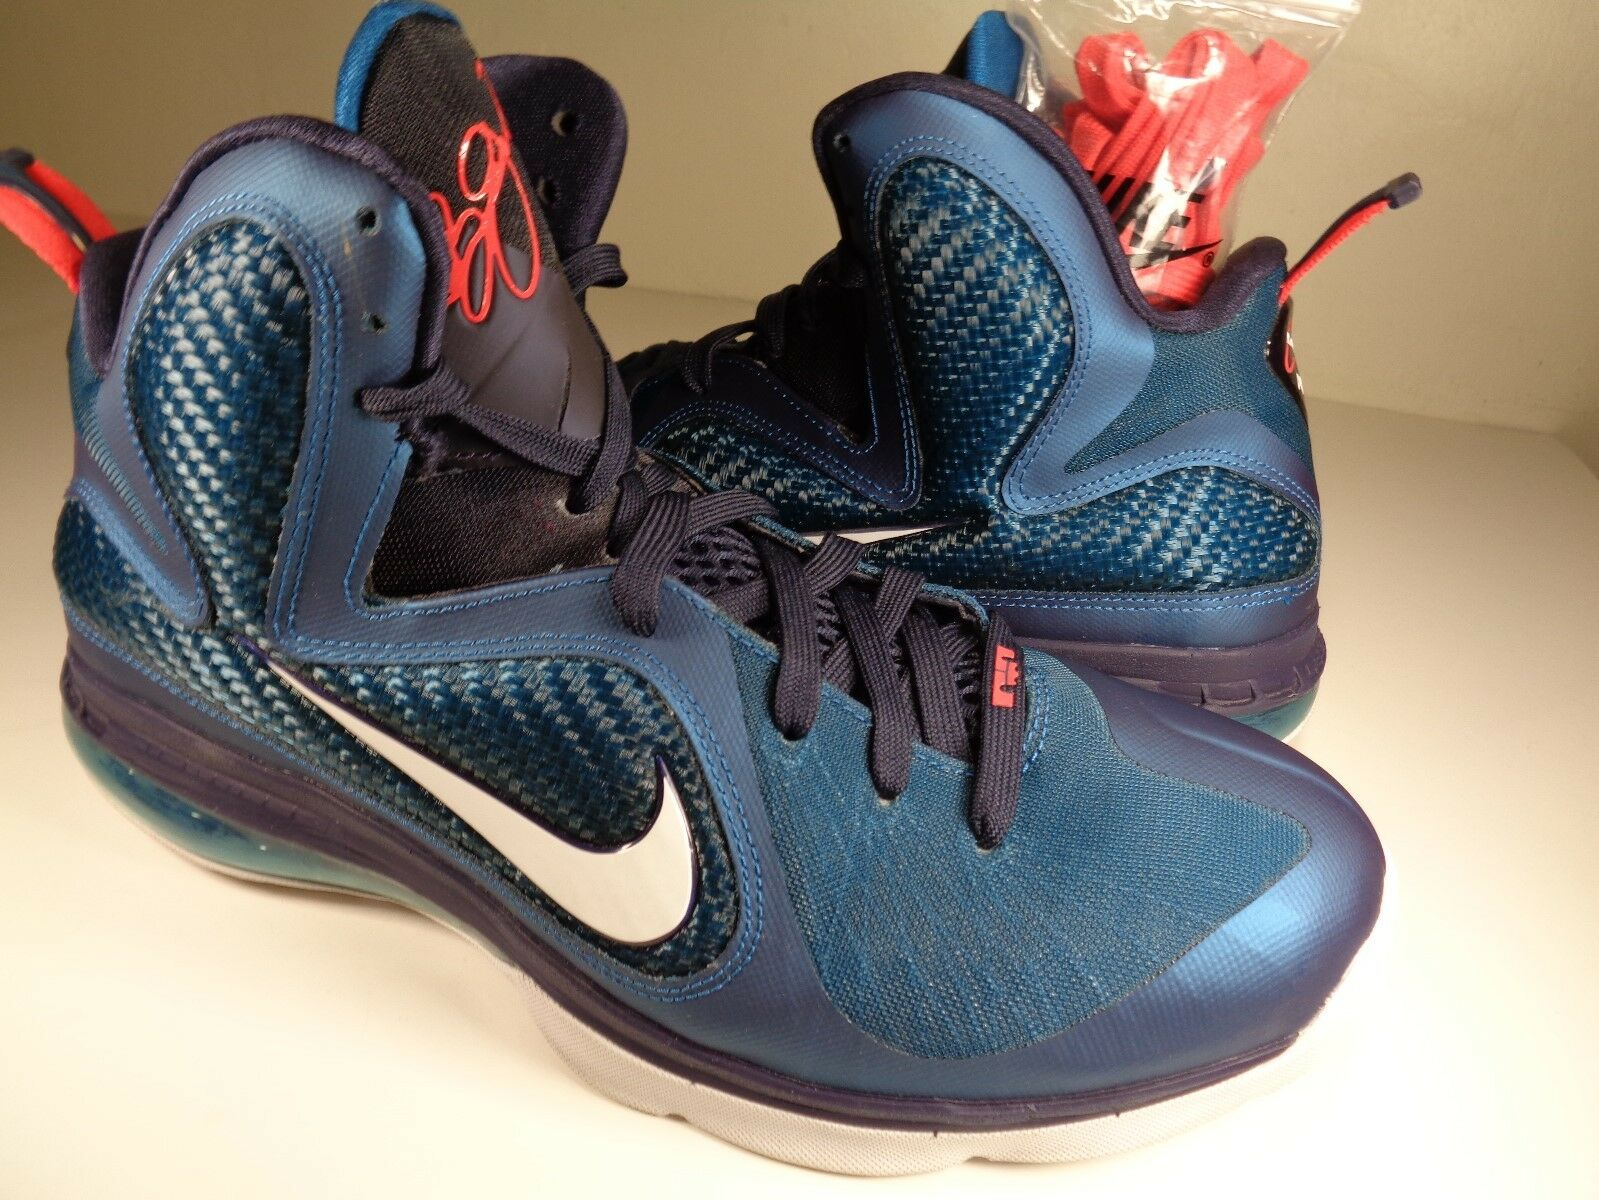 Nike Lebron 9 Swingman Griffey Green Abyss White Blue Price reduction The most popular shoes for men and women